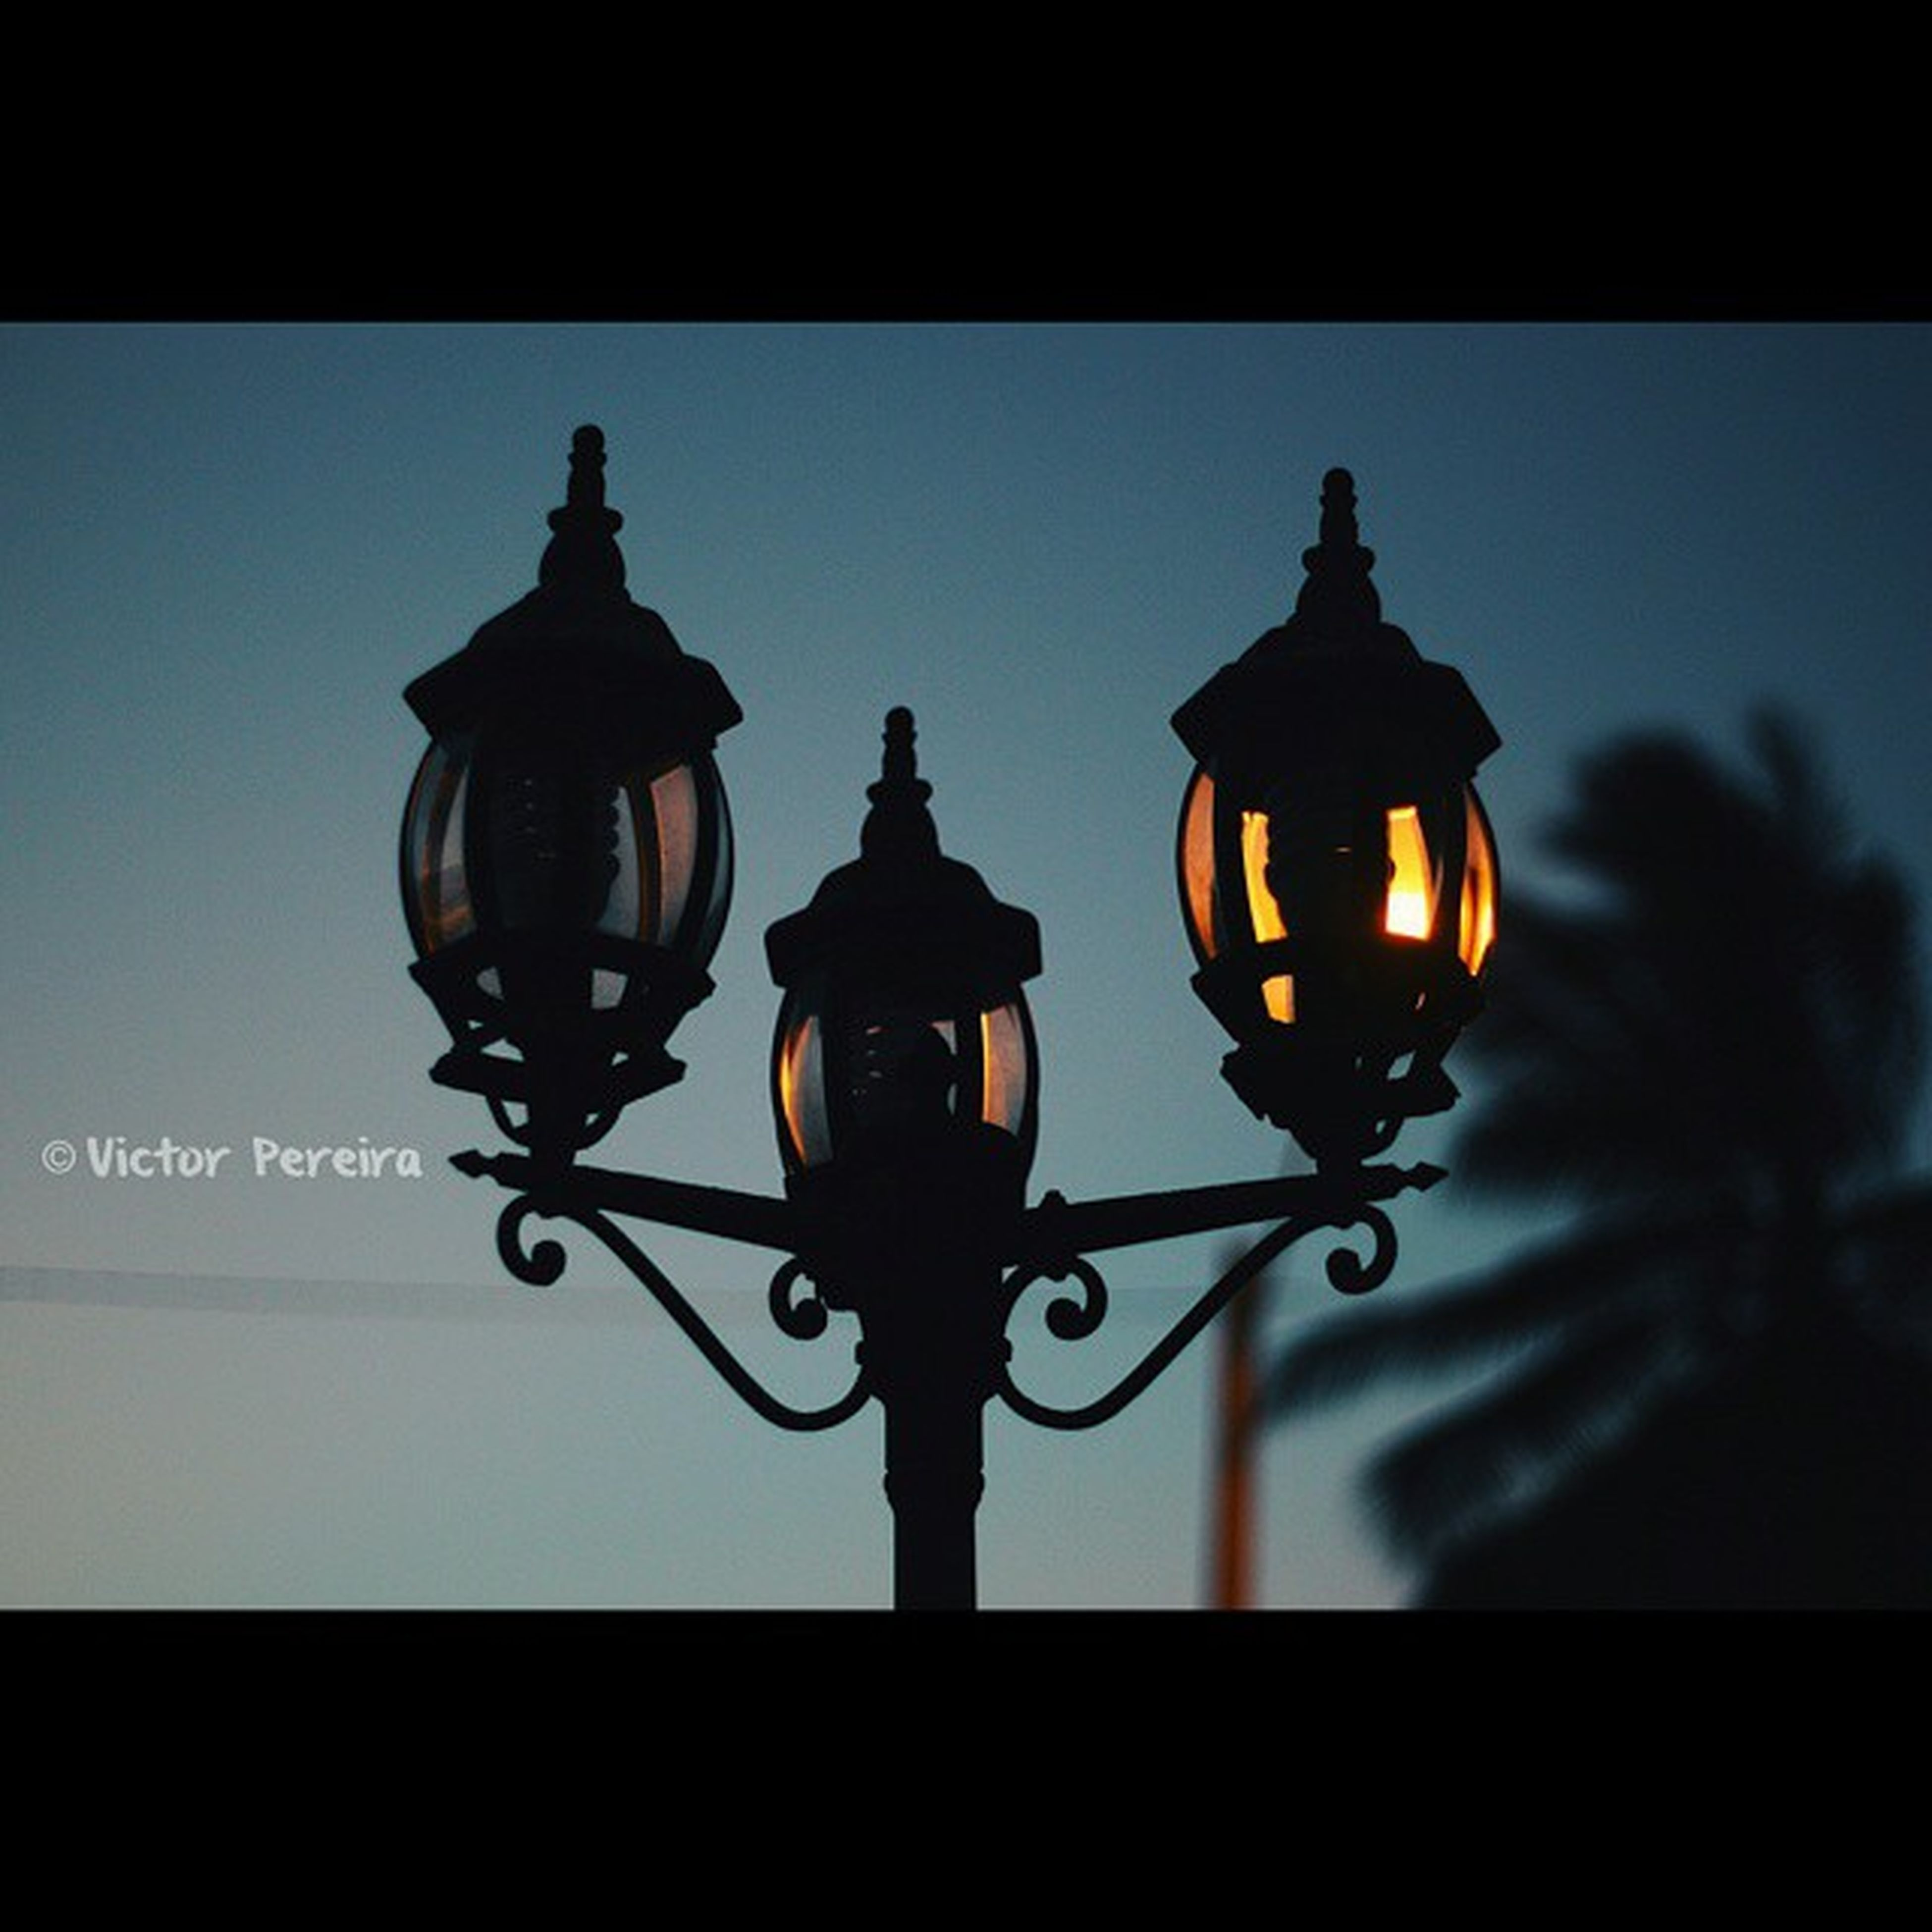 lighting equipment, illuminated, street light, low angle view, silhouette, electricity, transfer print, hanging, electric lamp, electric light, light bulb, clear sky, lantern, sky, auto post production filter, built structure, metal, night, indoors, dusk